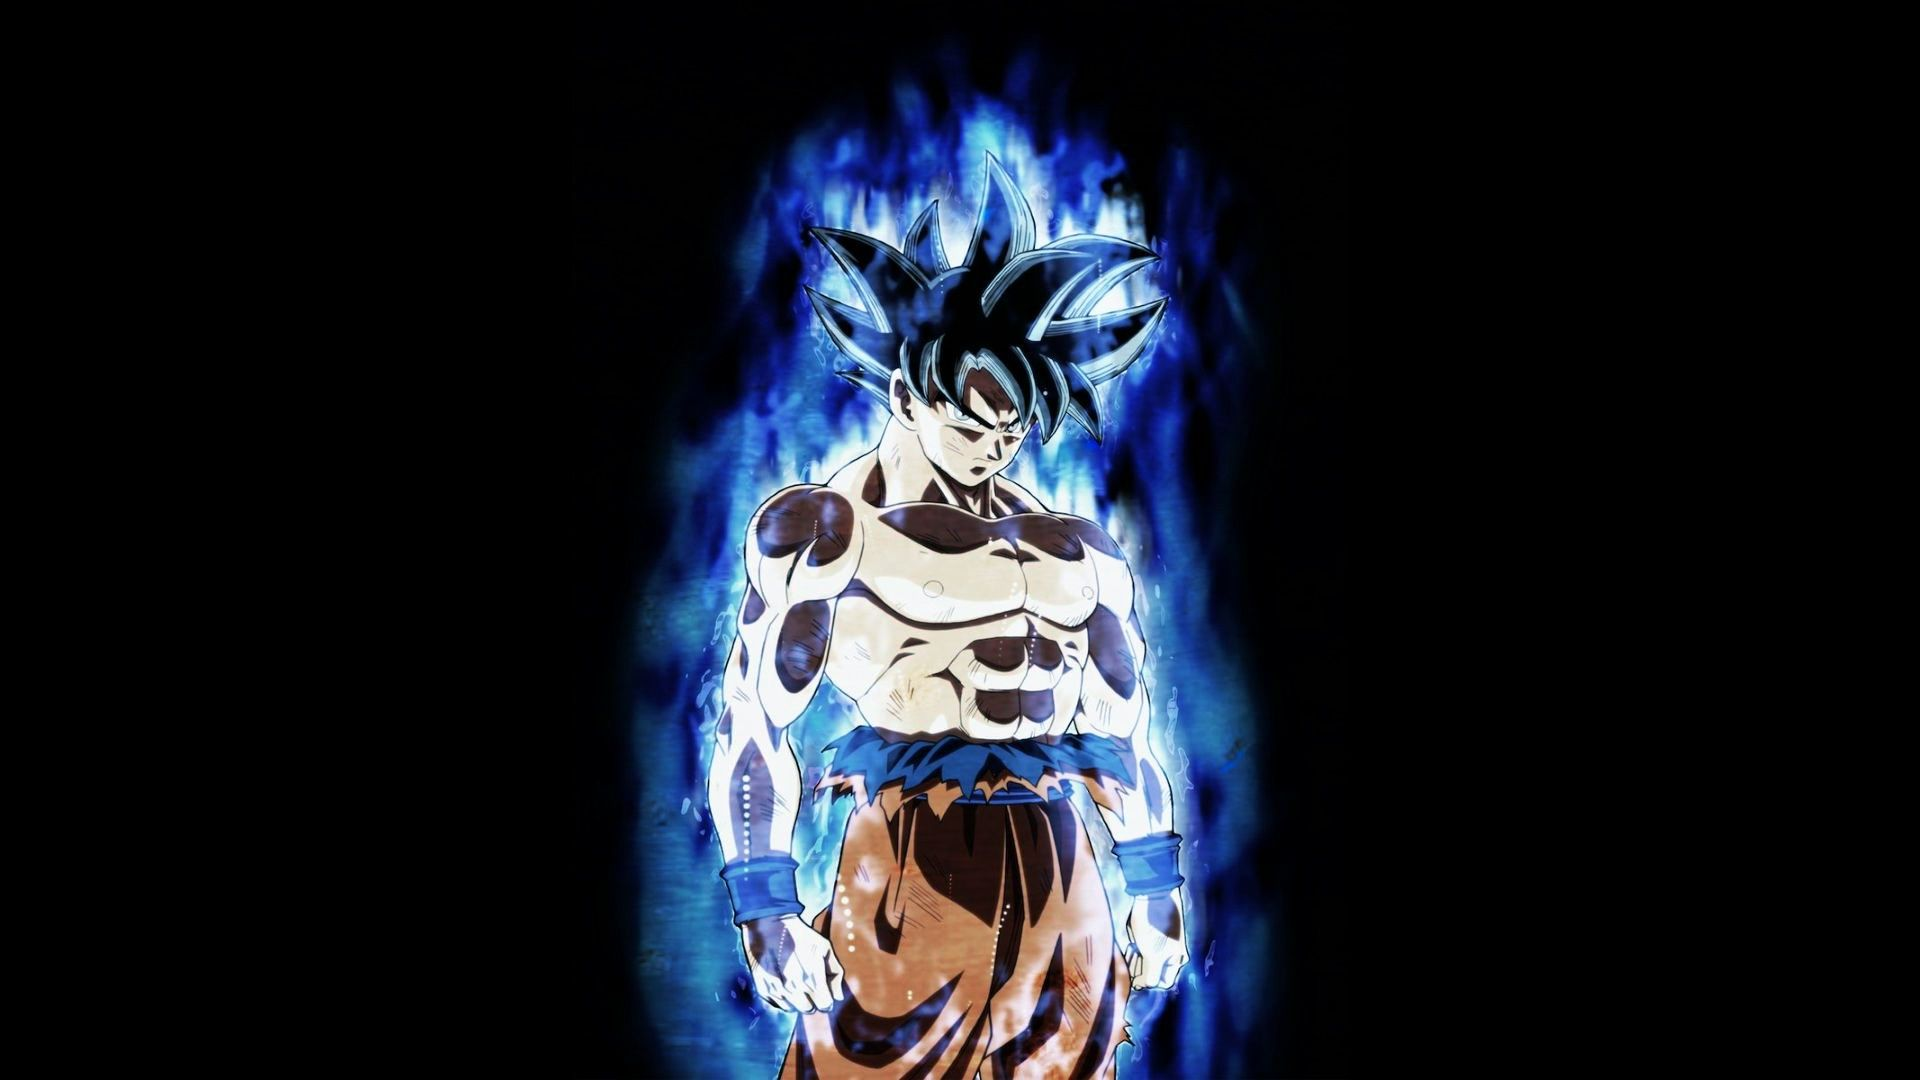 Ultra Instinct Goku Black Wallpapers Top Free Ultra Instinct Goku Black Backgrounds Wallpaperaccess